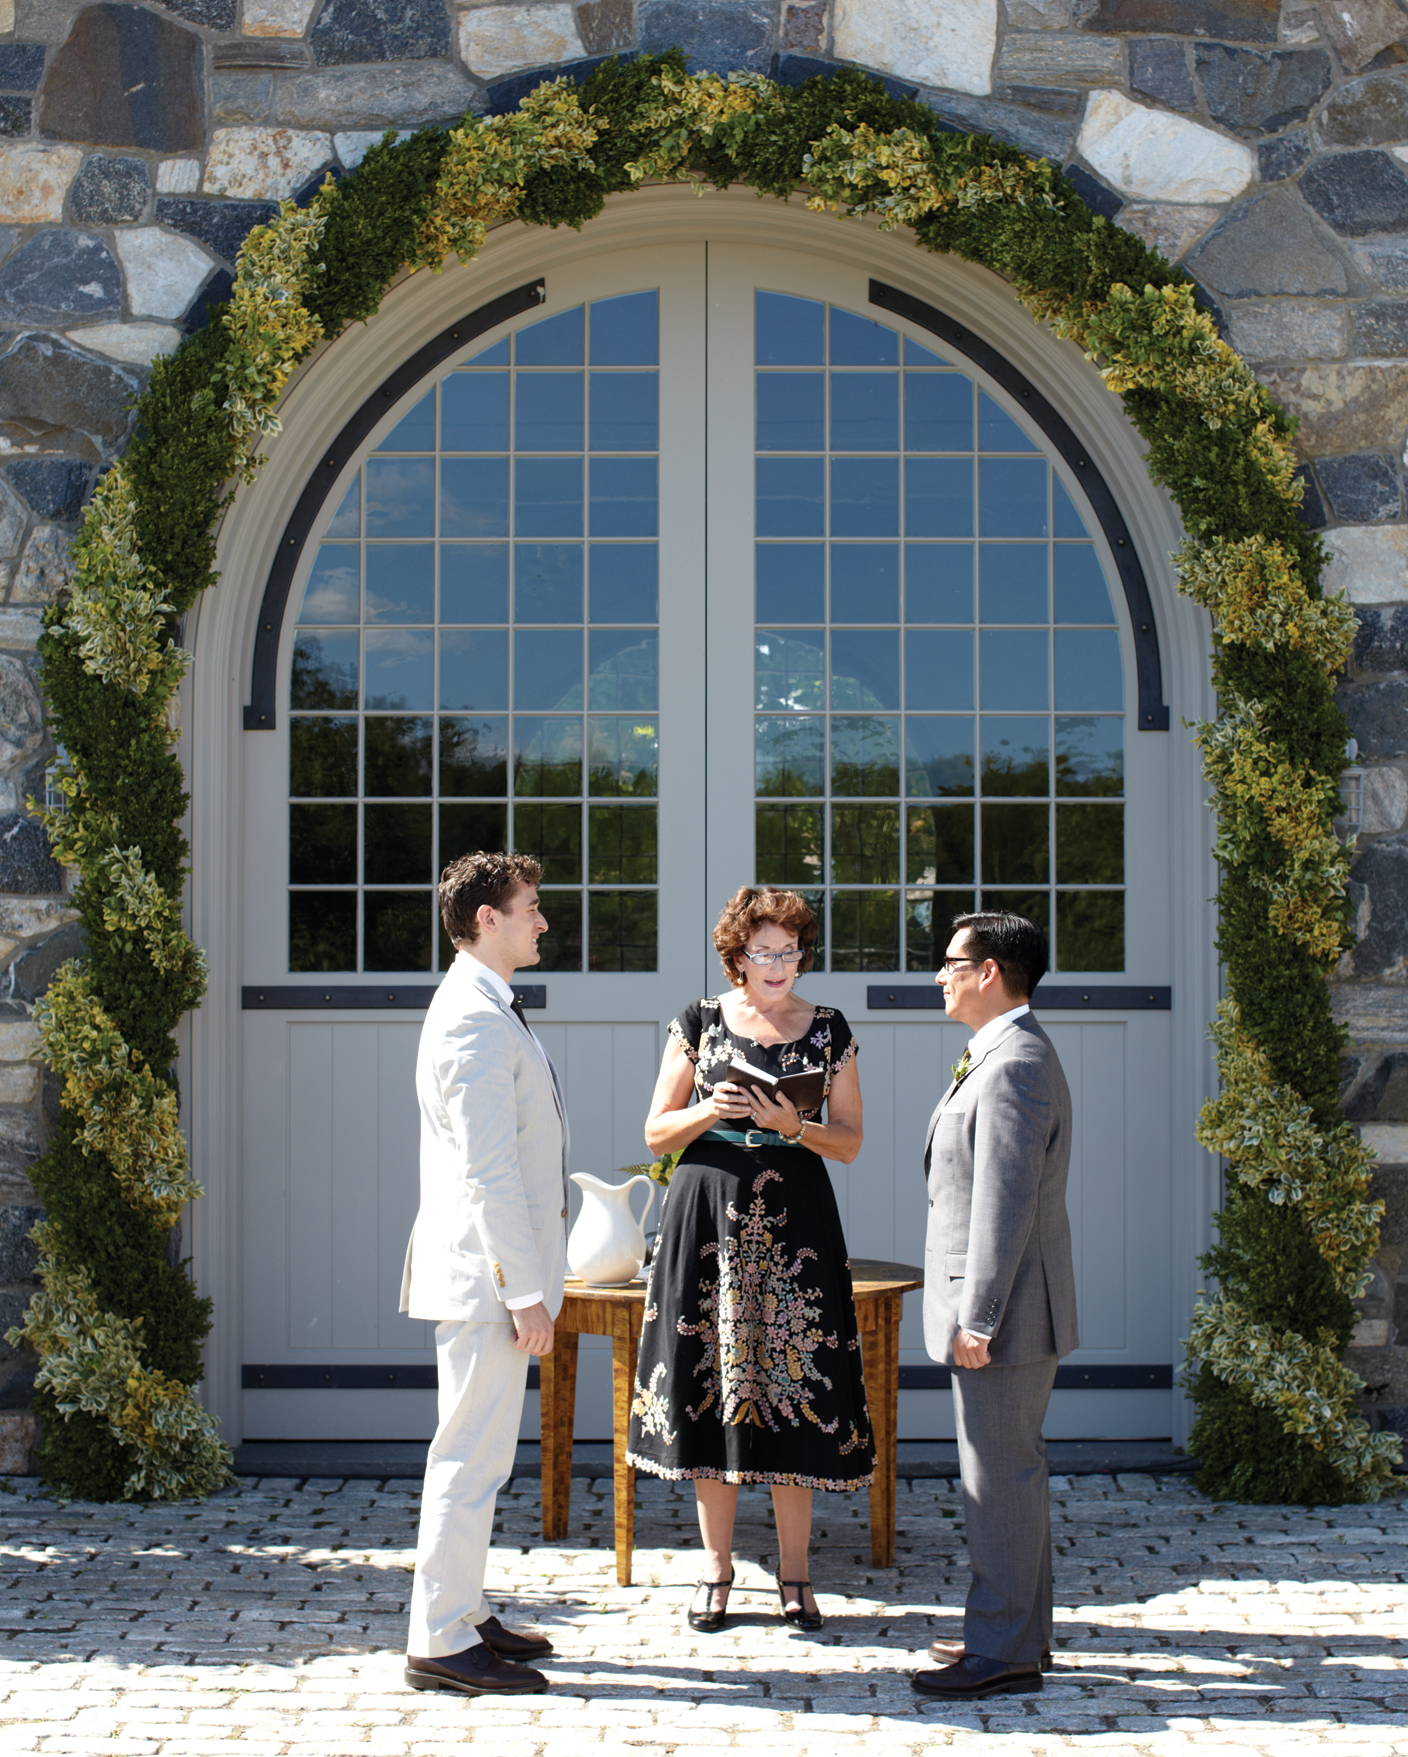 These grooms held their celebrationon Martha Stewart's property (she's the aunt of one of them).